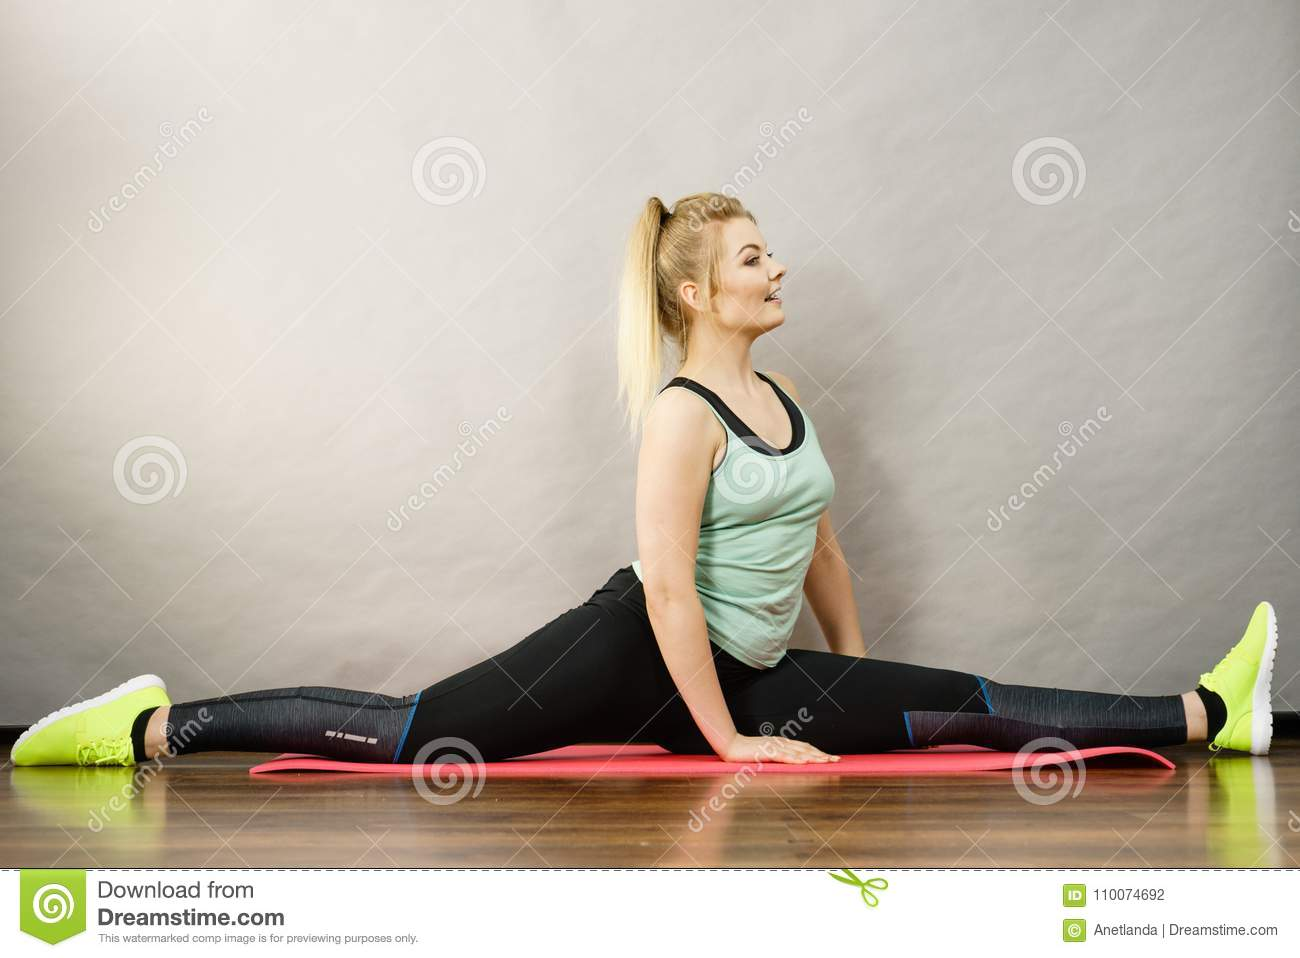 Stretching: how to sit on a twine at home